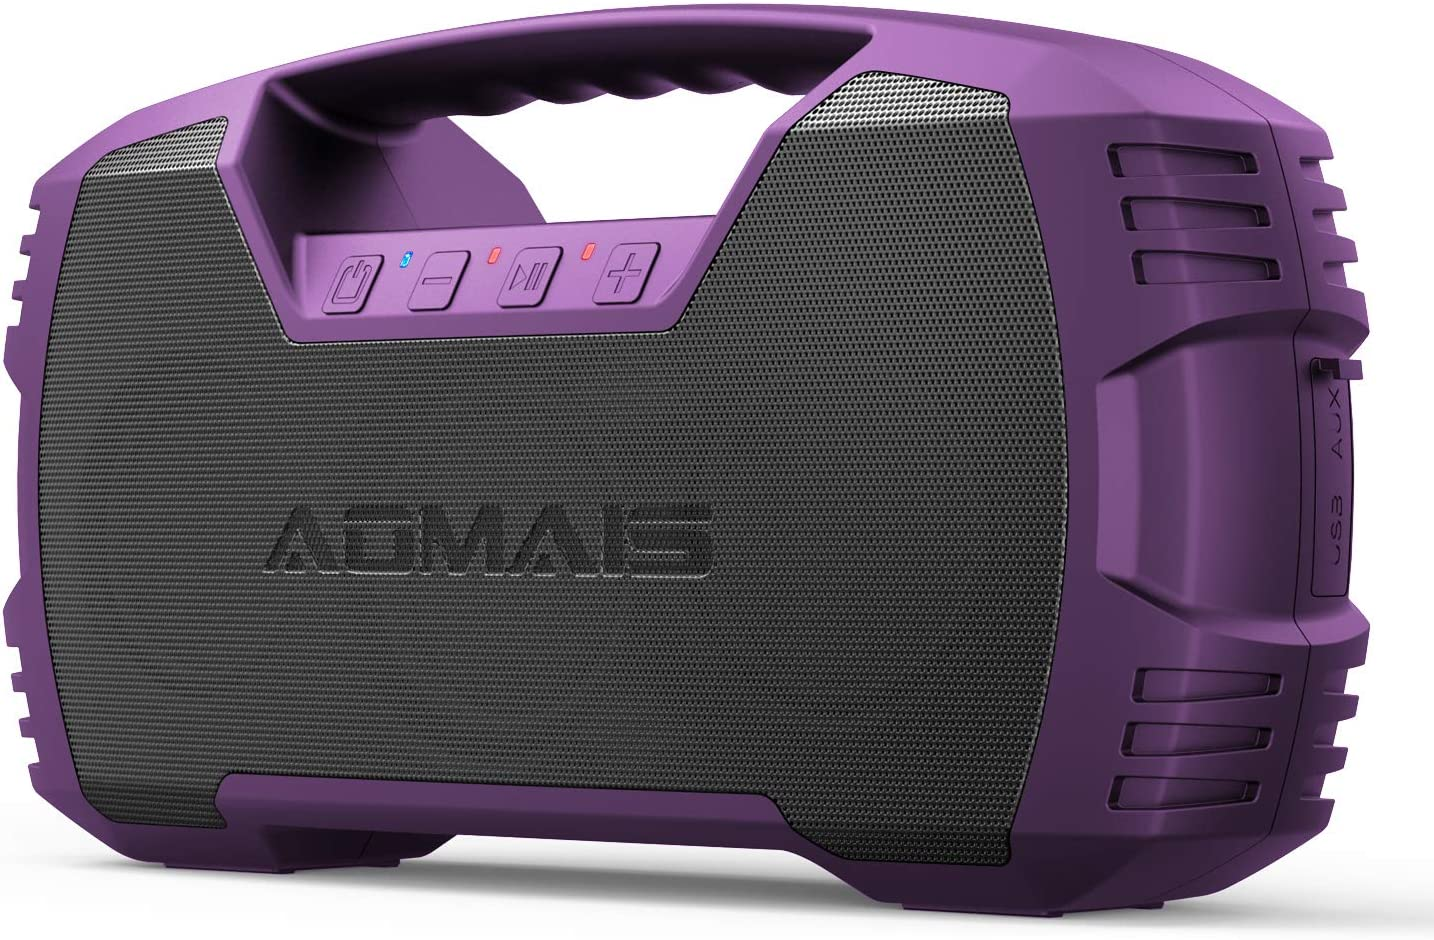 AOMAIS GO Bluetooth Speakers, 40H Playtime Outdoor Portable Speaker, 40W Stereo Sound Rich Bass, IPX7 Waterproof Bluetooth 5.0 Wireless Pairing,10000mAh Power Bank, for Party, Travel-Purple[2020 New]